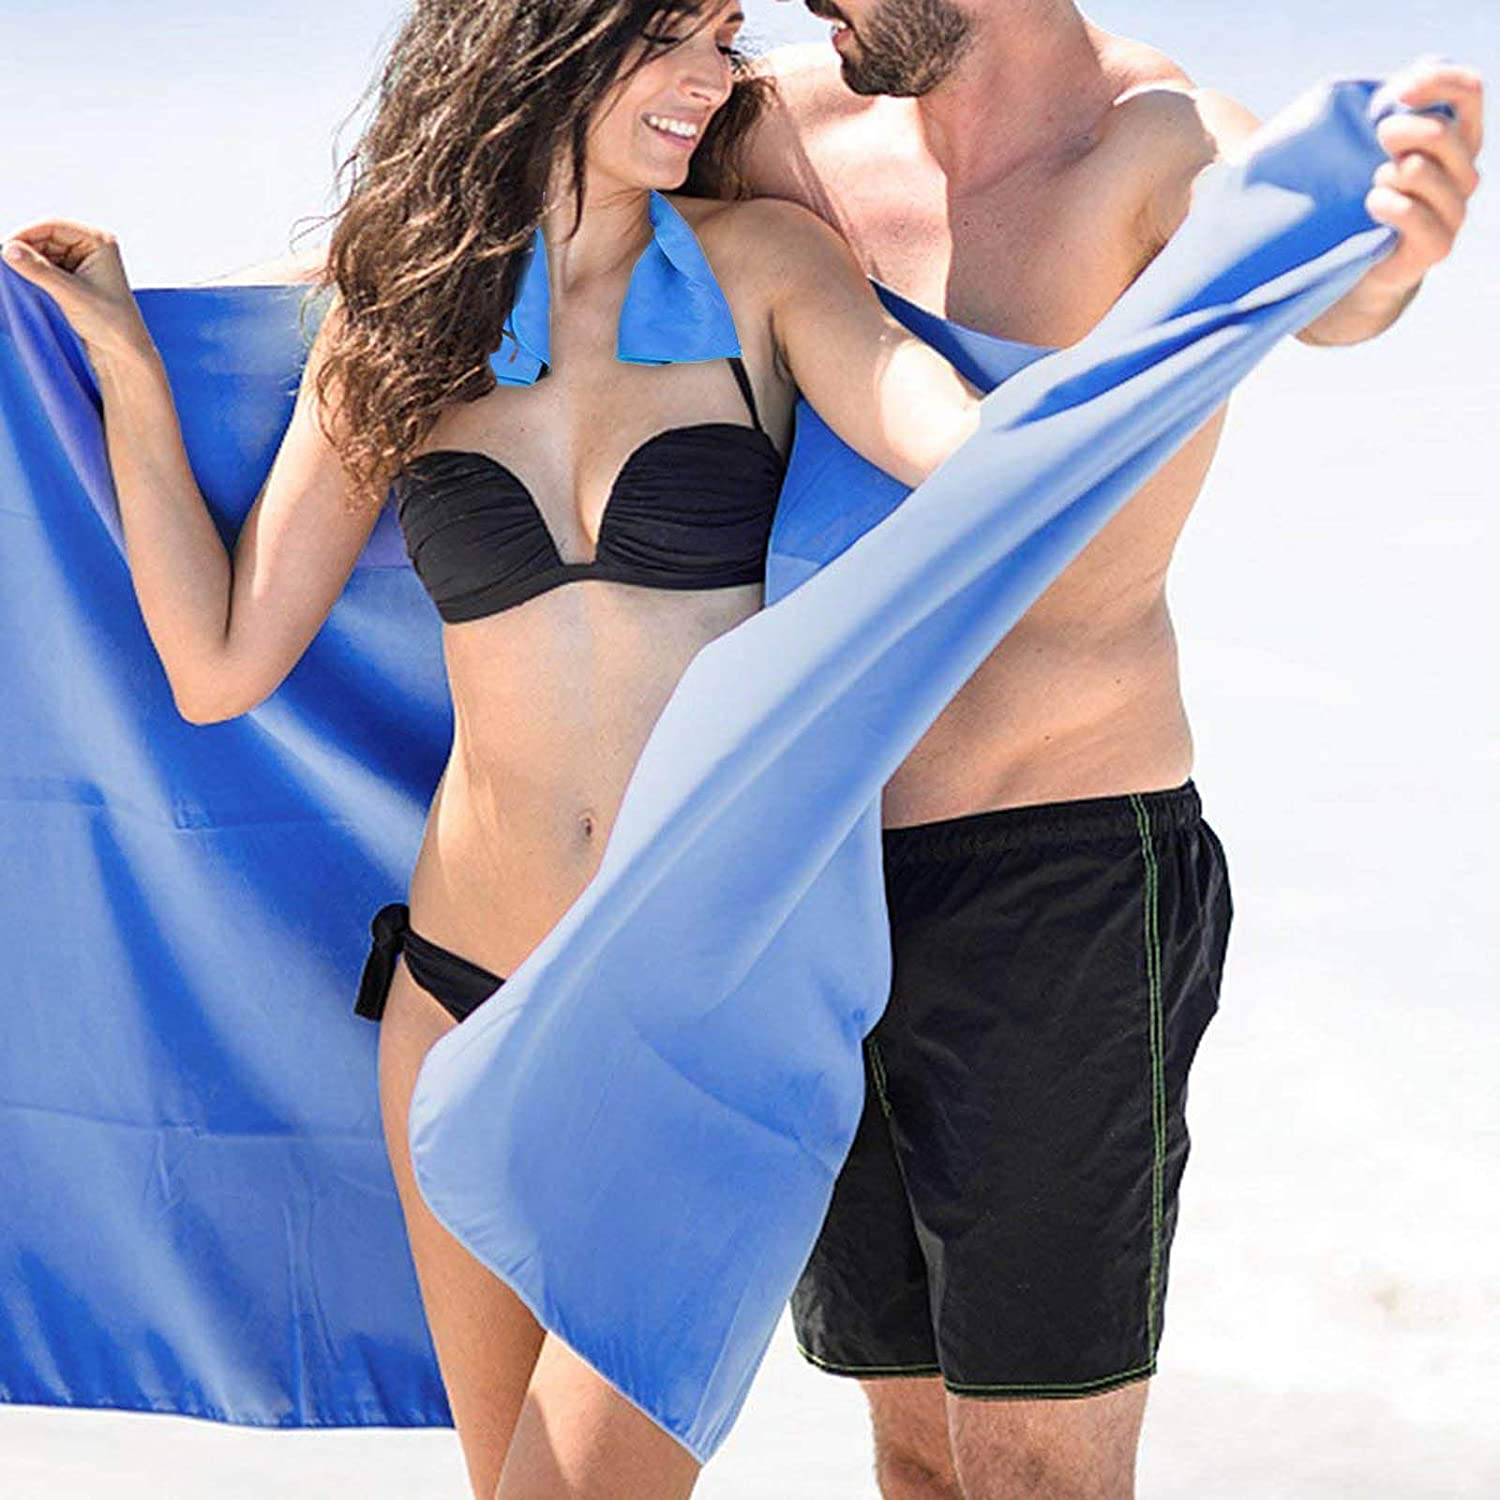 Microfiber Travel Towel XL 30x60 with Free Hand Towel  Fast Drying, Compact, Soft, Light, Antibacterial. for Backpacking, Camping, Beach, Gym, Swimming(blueee)